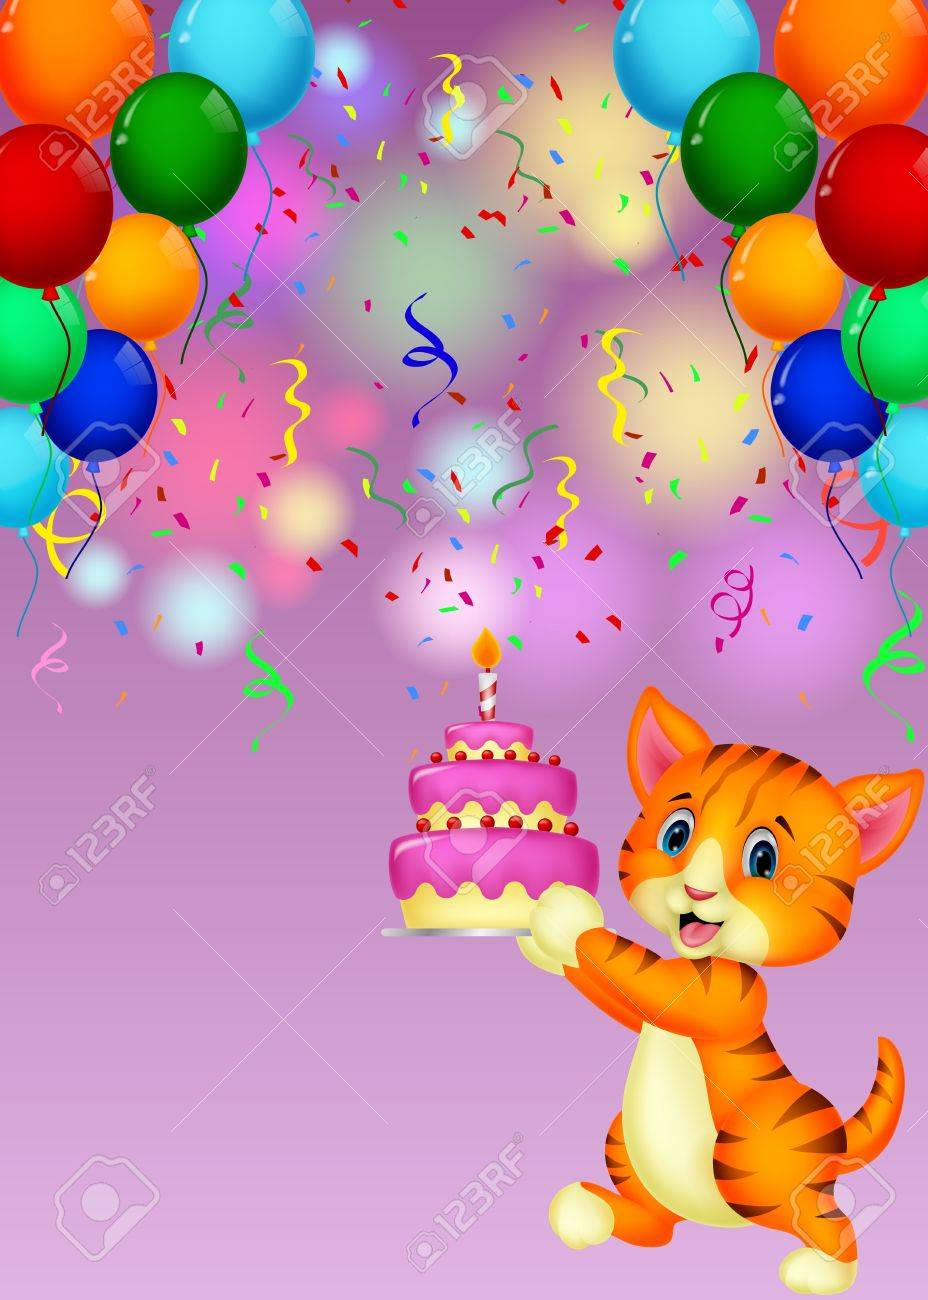 Cat Cartoon With Birthday Cake Royalty Free Cliparts Vectors And